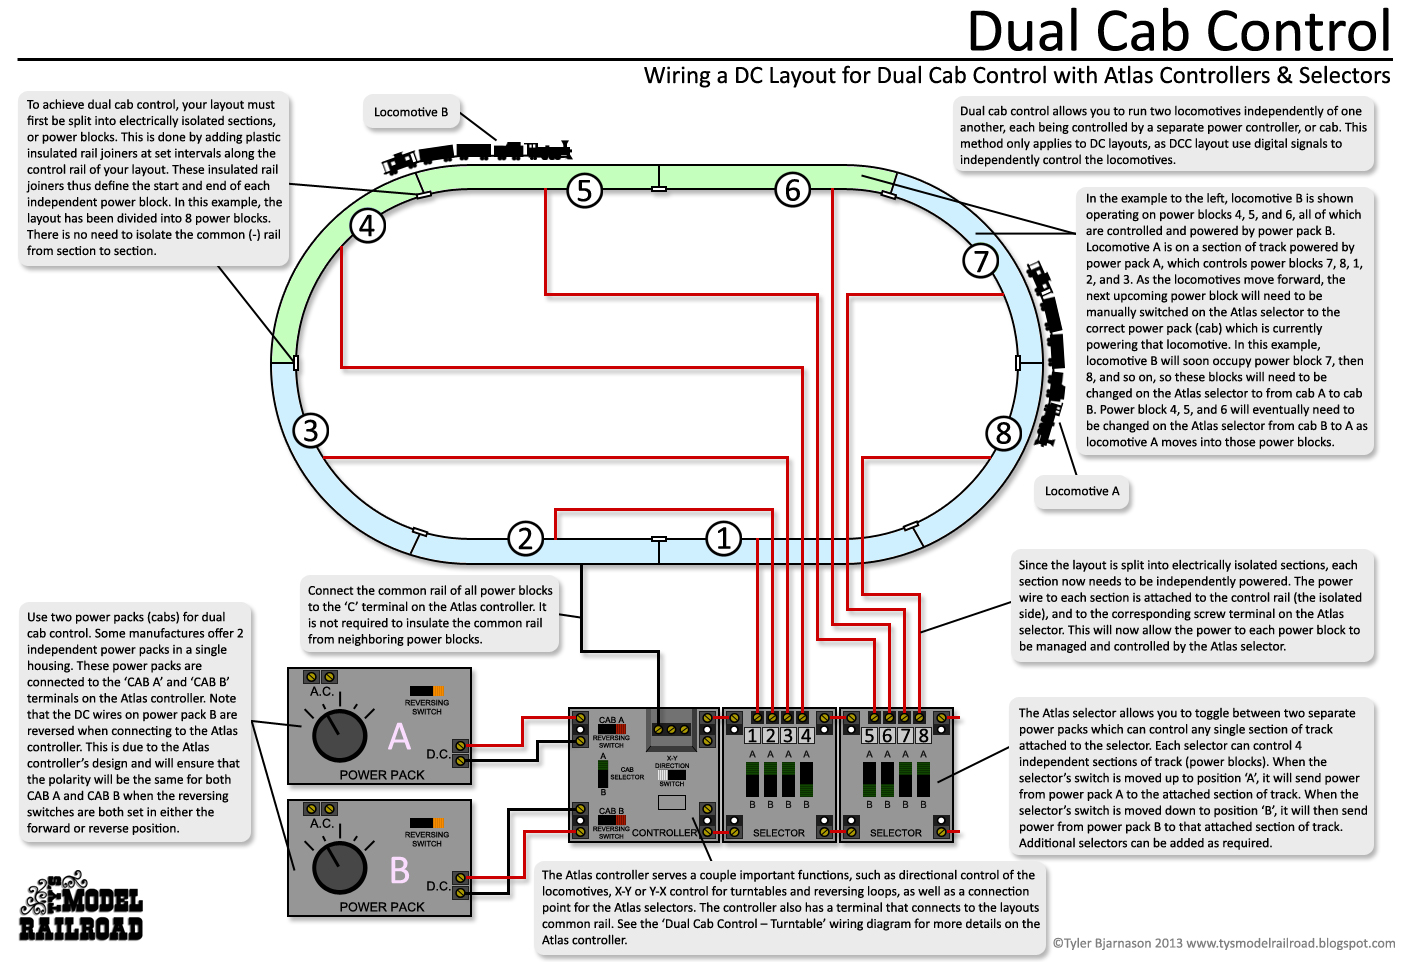 Wiring Ho Train Snap Switch Modern Design Of Diagram Lionel Diagrams Ty S Model Railroad Rh Tysmodelrailroad Blogspot Com Track Accessory